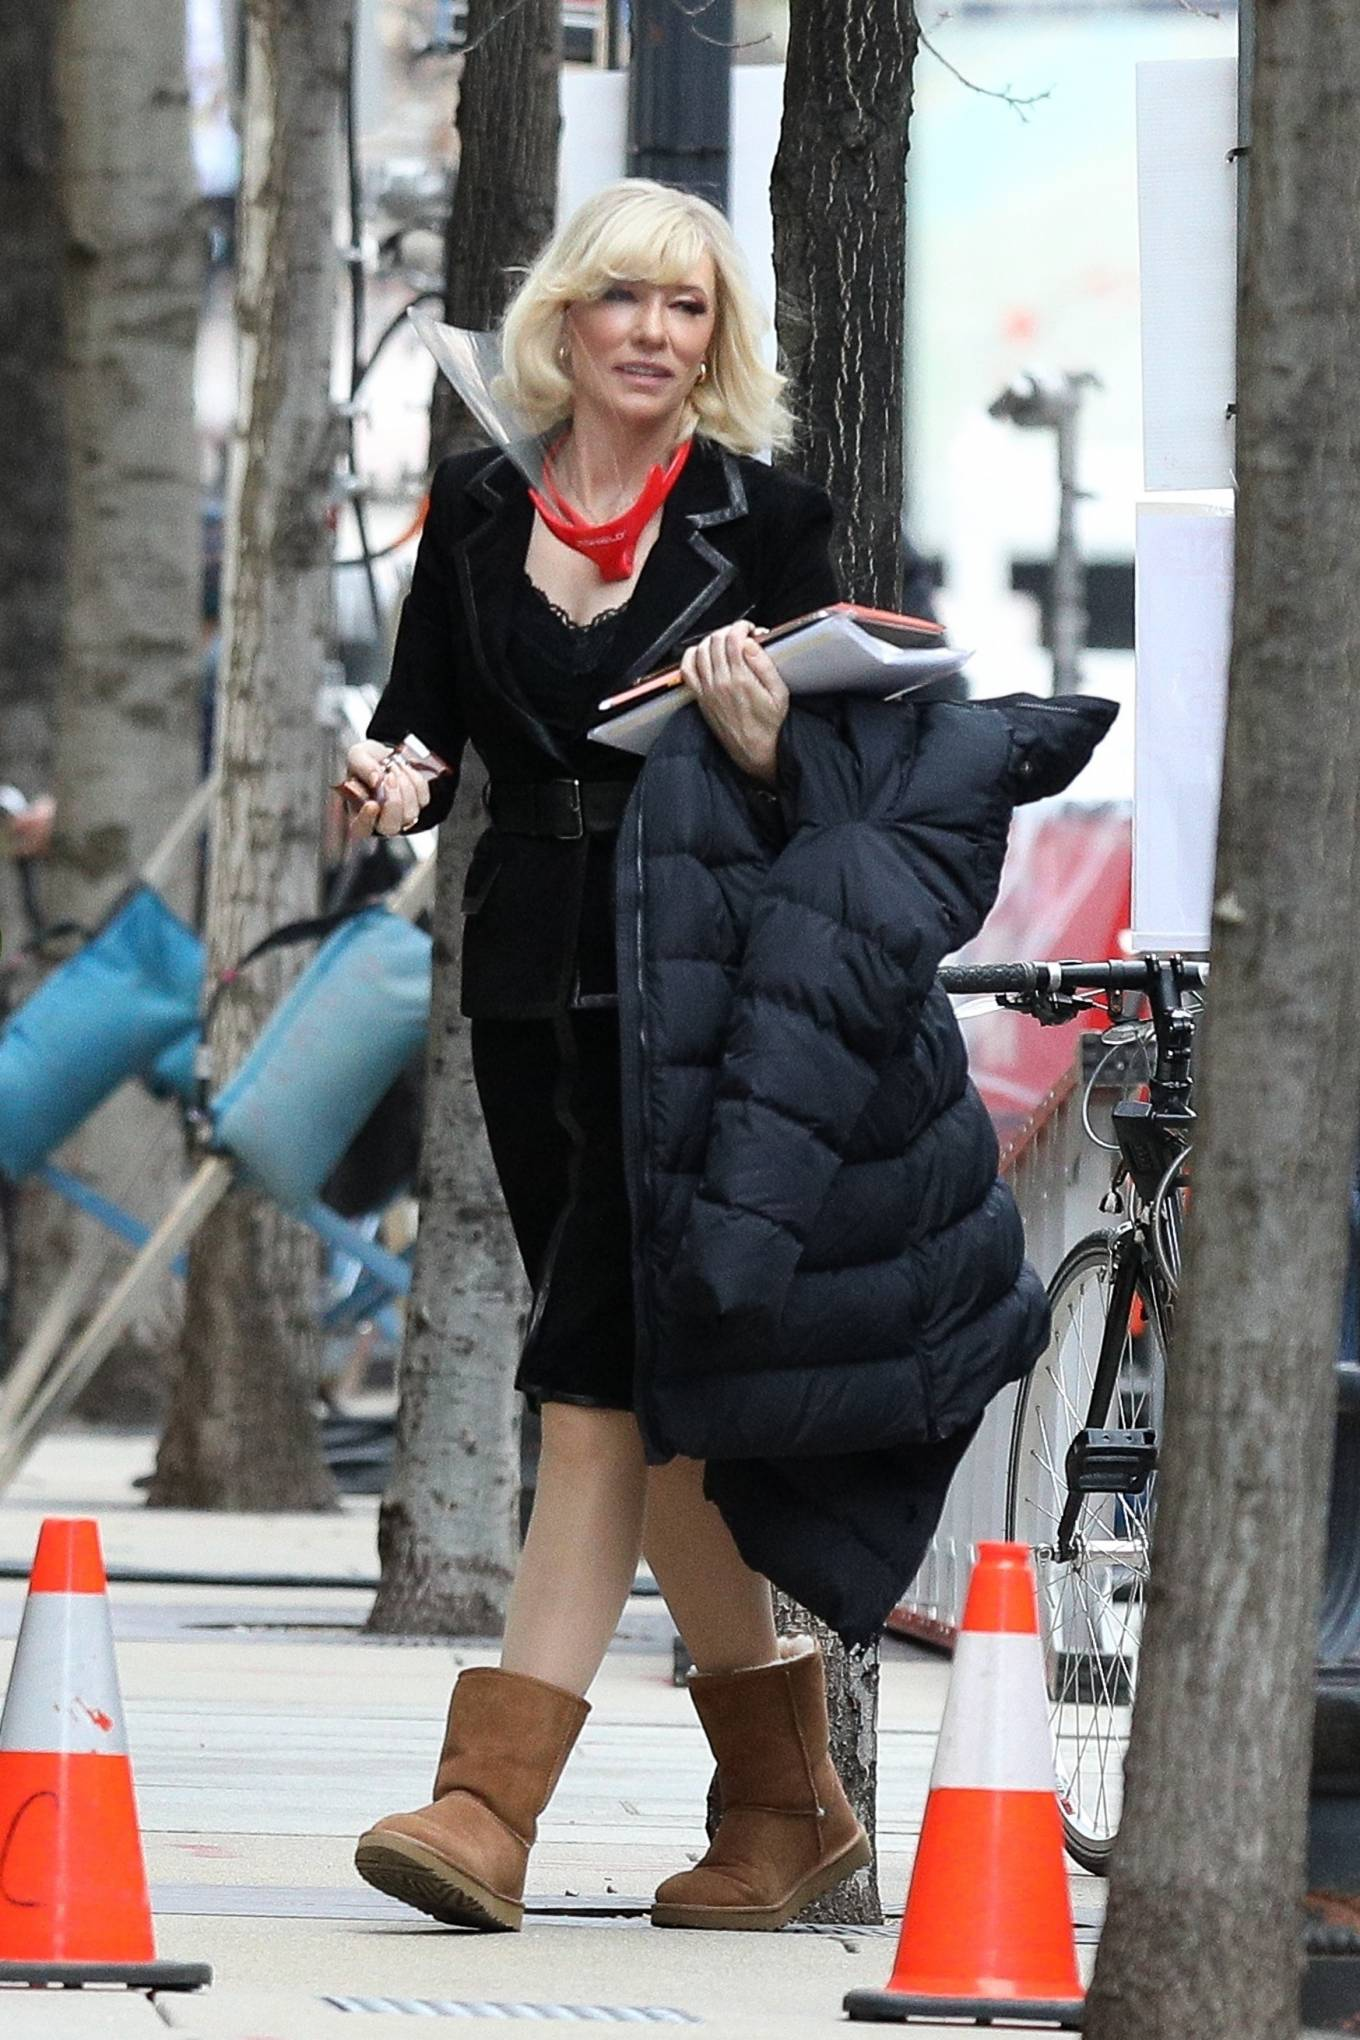 Cate Blanchett - Filming 'Don't Look Up' in Boston